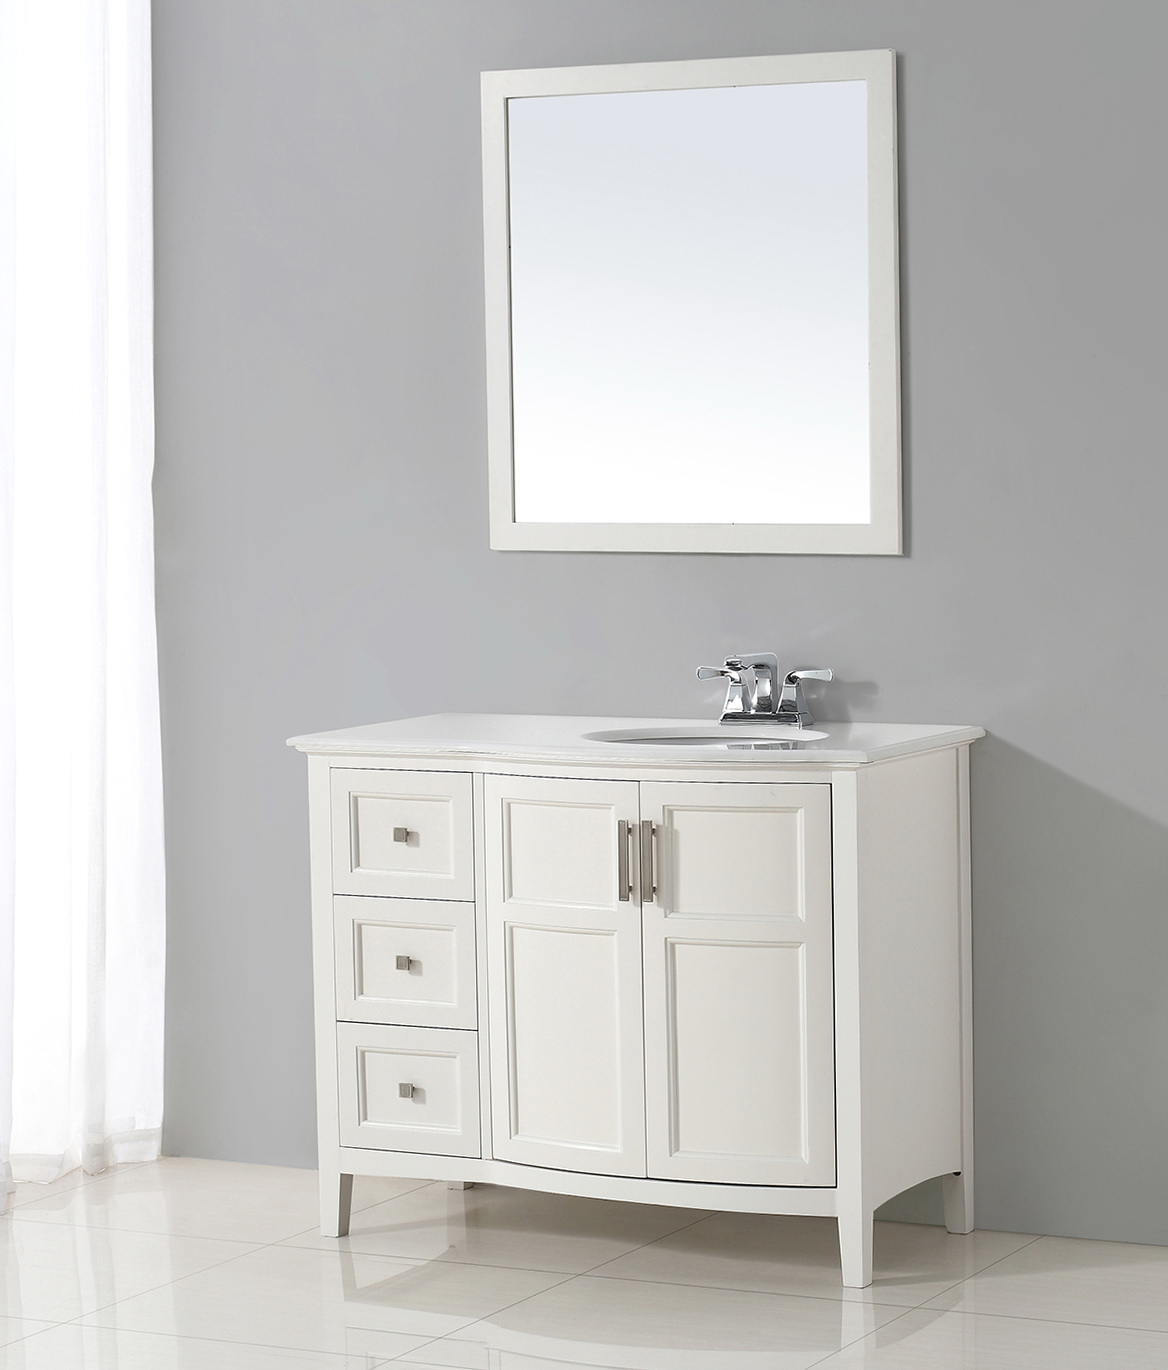 bathroom vanity cabinets home depot vanities without tops cheap vanity sets bathroom from 42 500